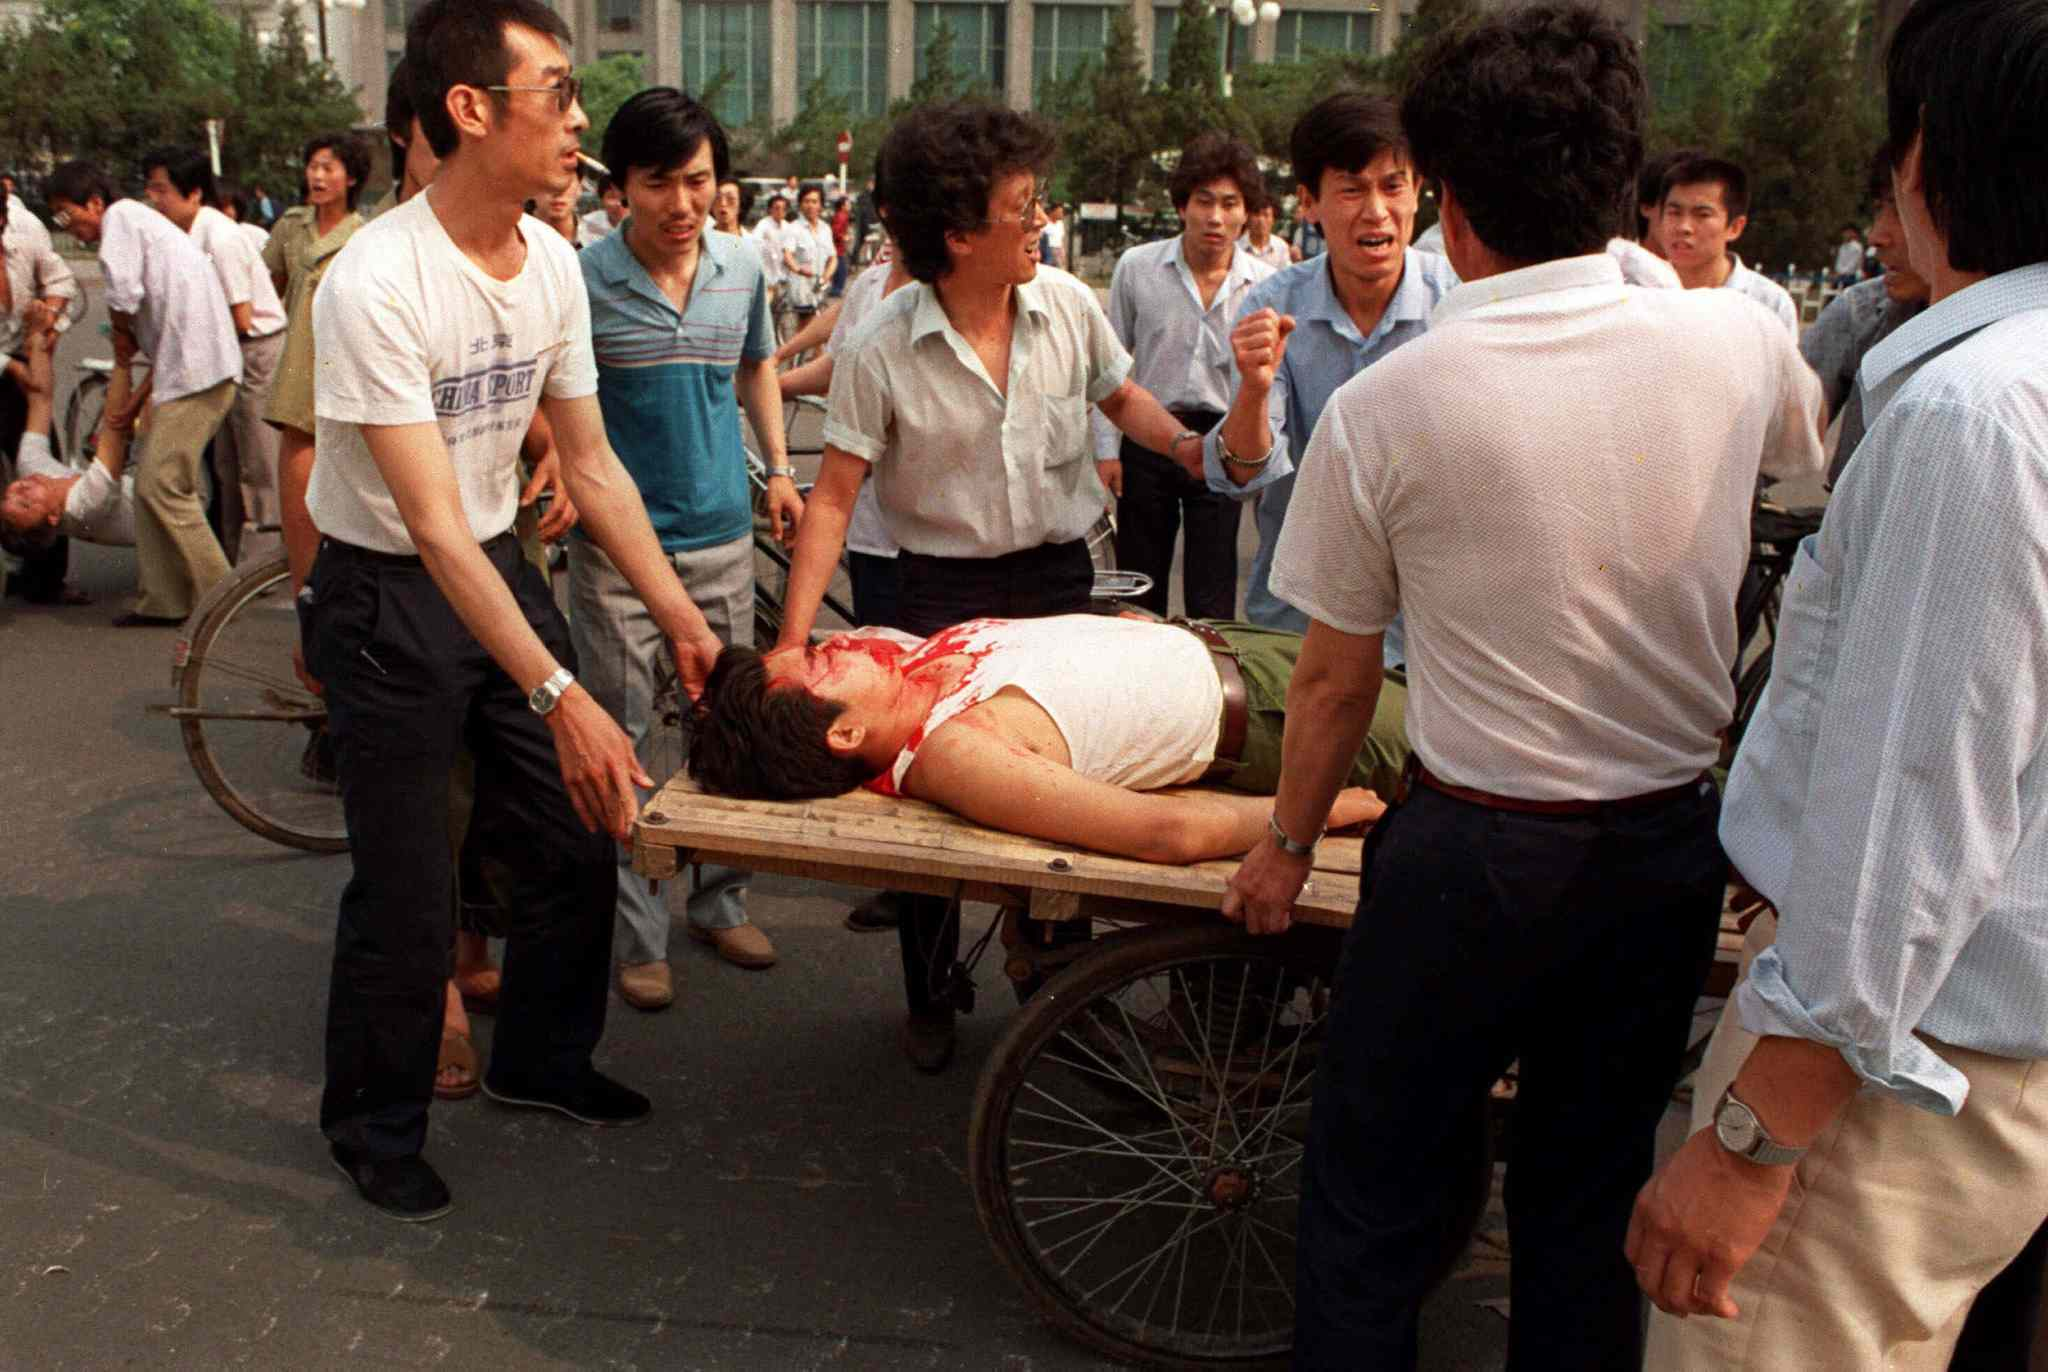 Beijing residents load a wounded person on a rickshaw flatbed shortly after Chinese soldiers opened fire on a crowd in Tienanmen Square in this June 4, 1989 photo.